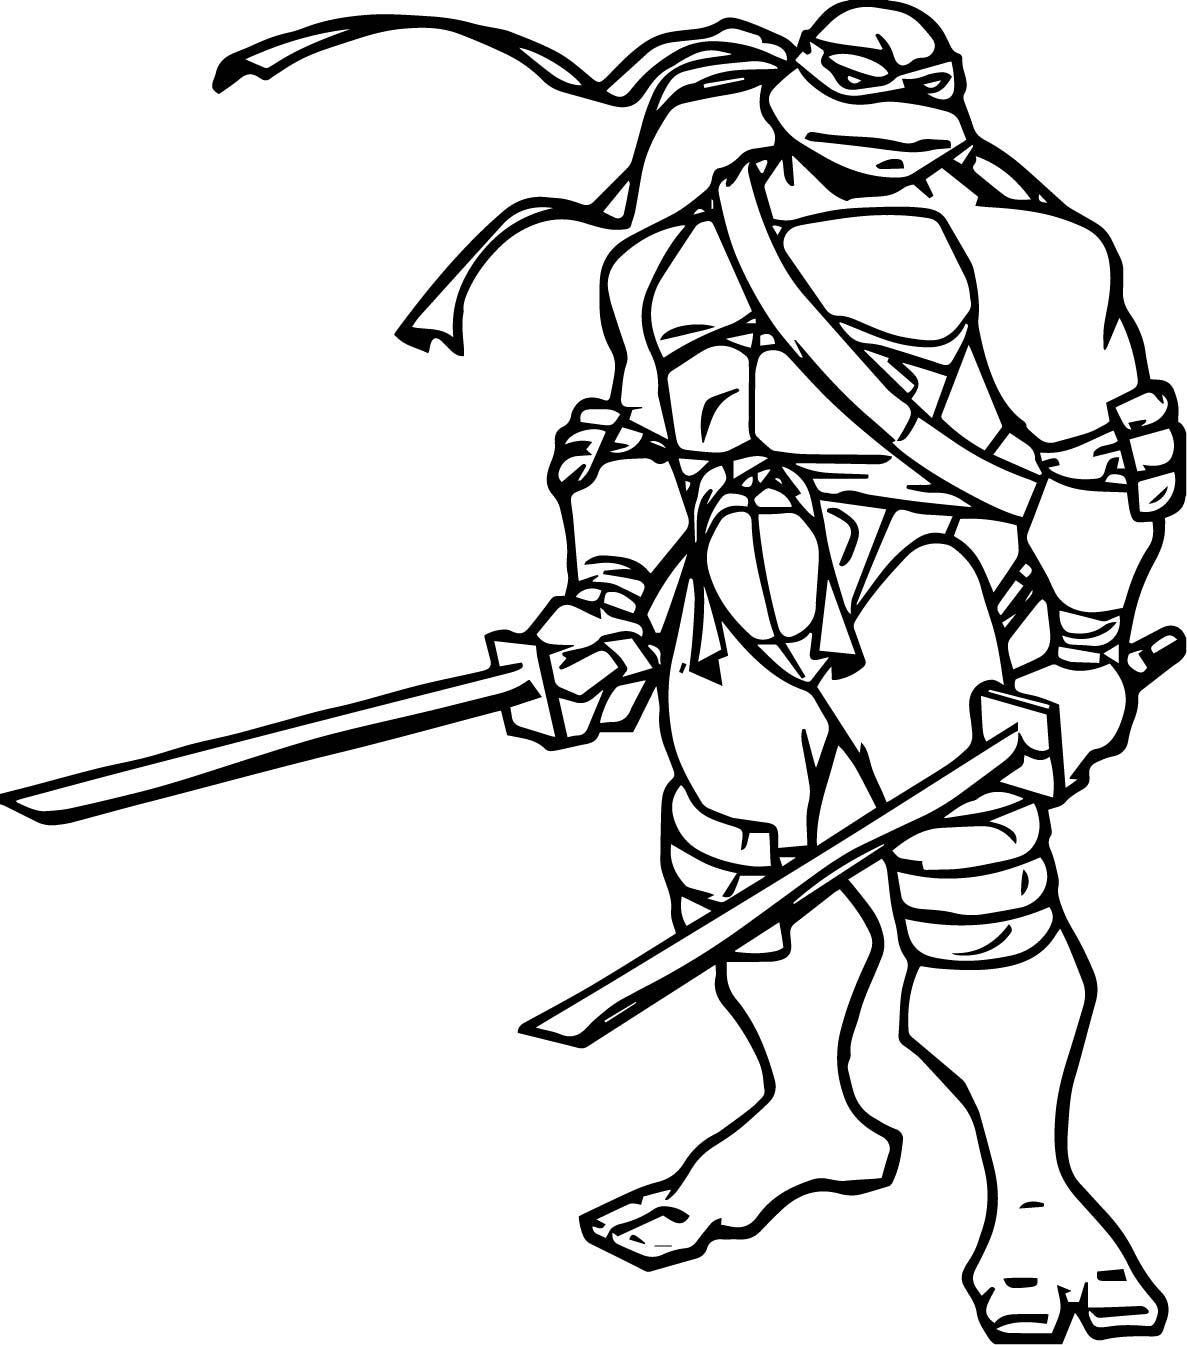 Ninja turtle two blade leonardo coloring page for Coloring pages of ninjas